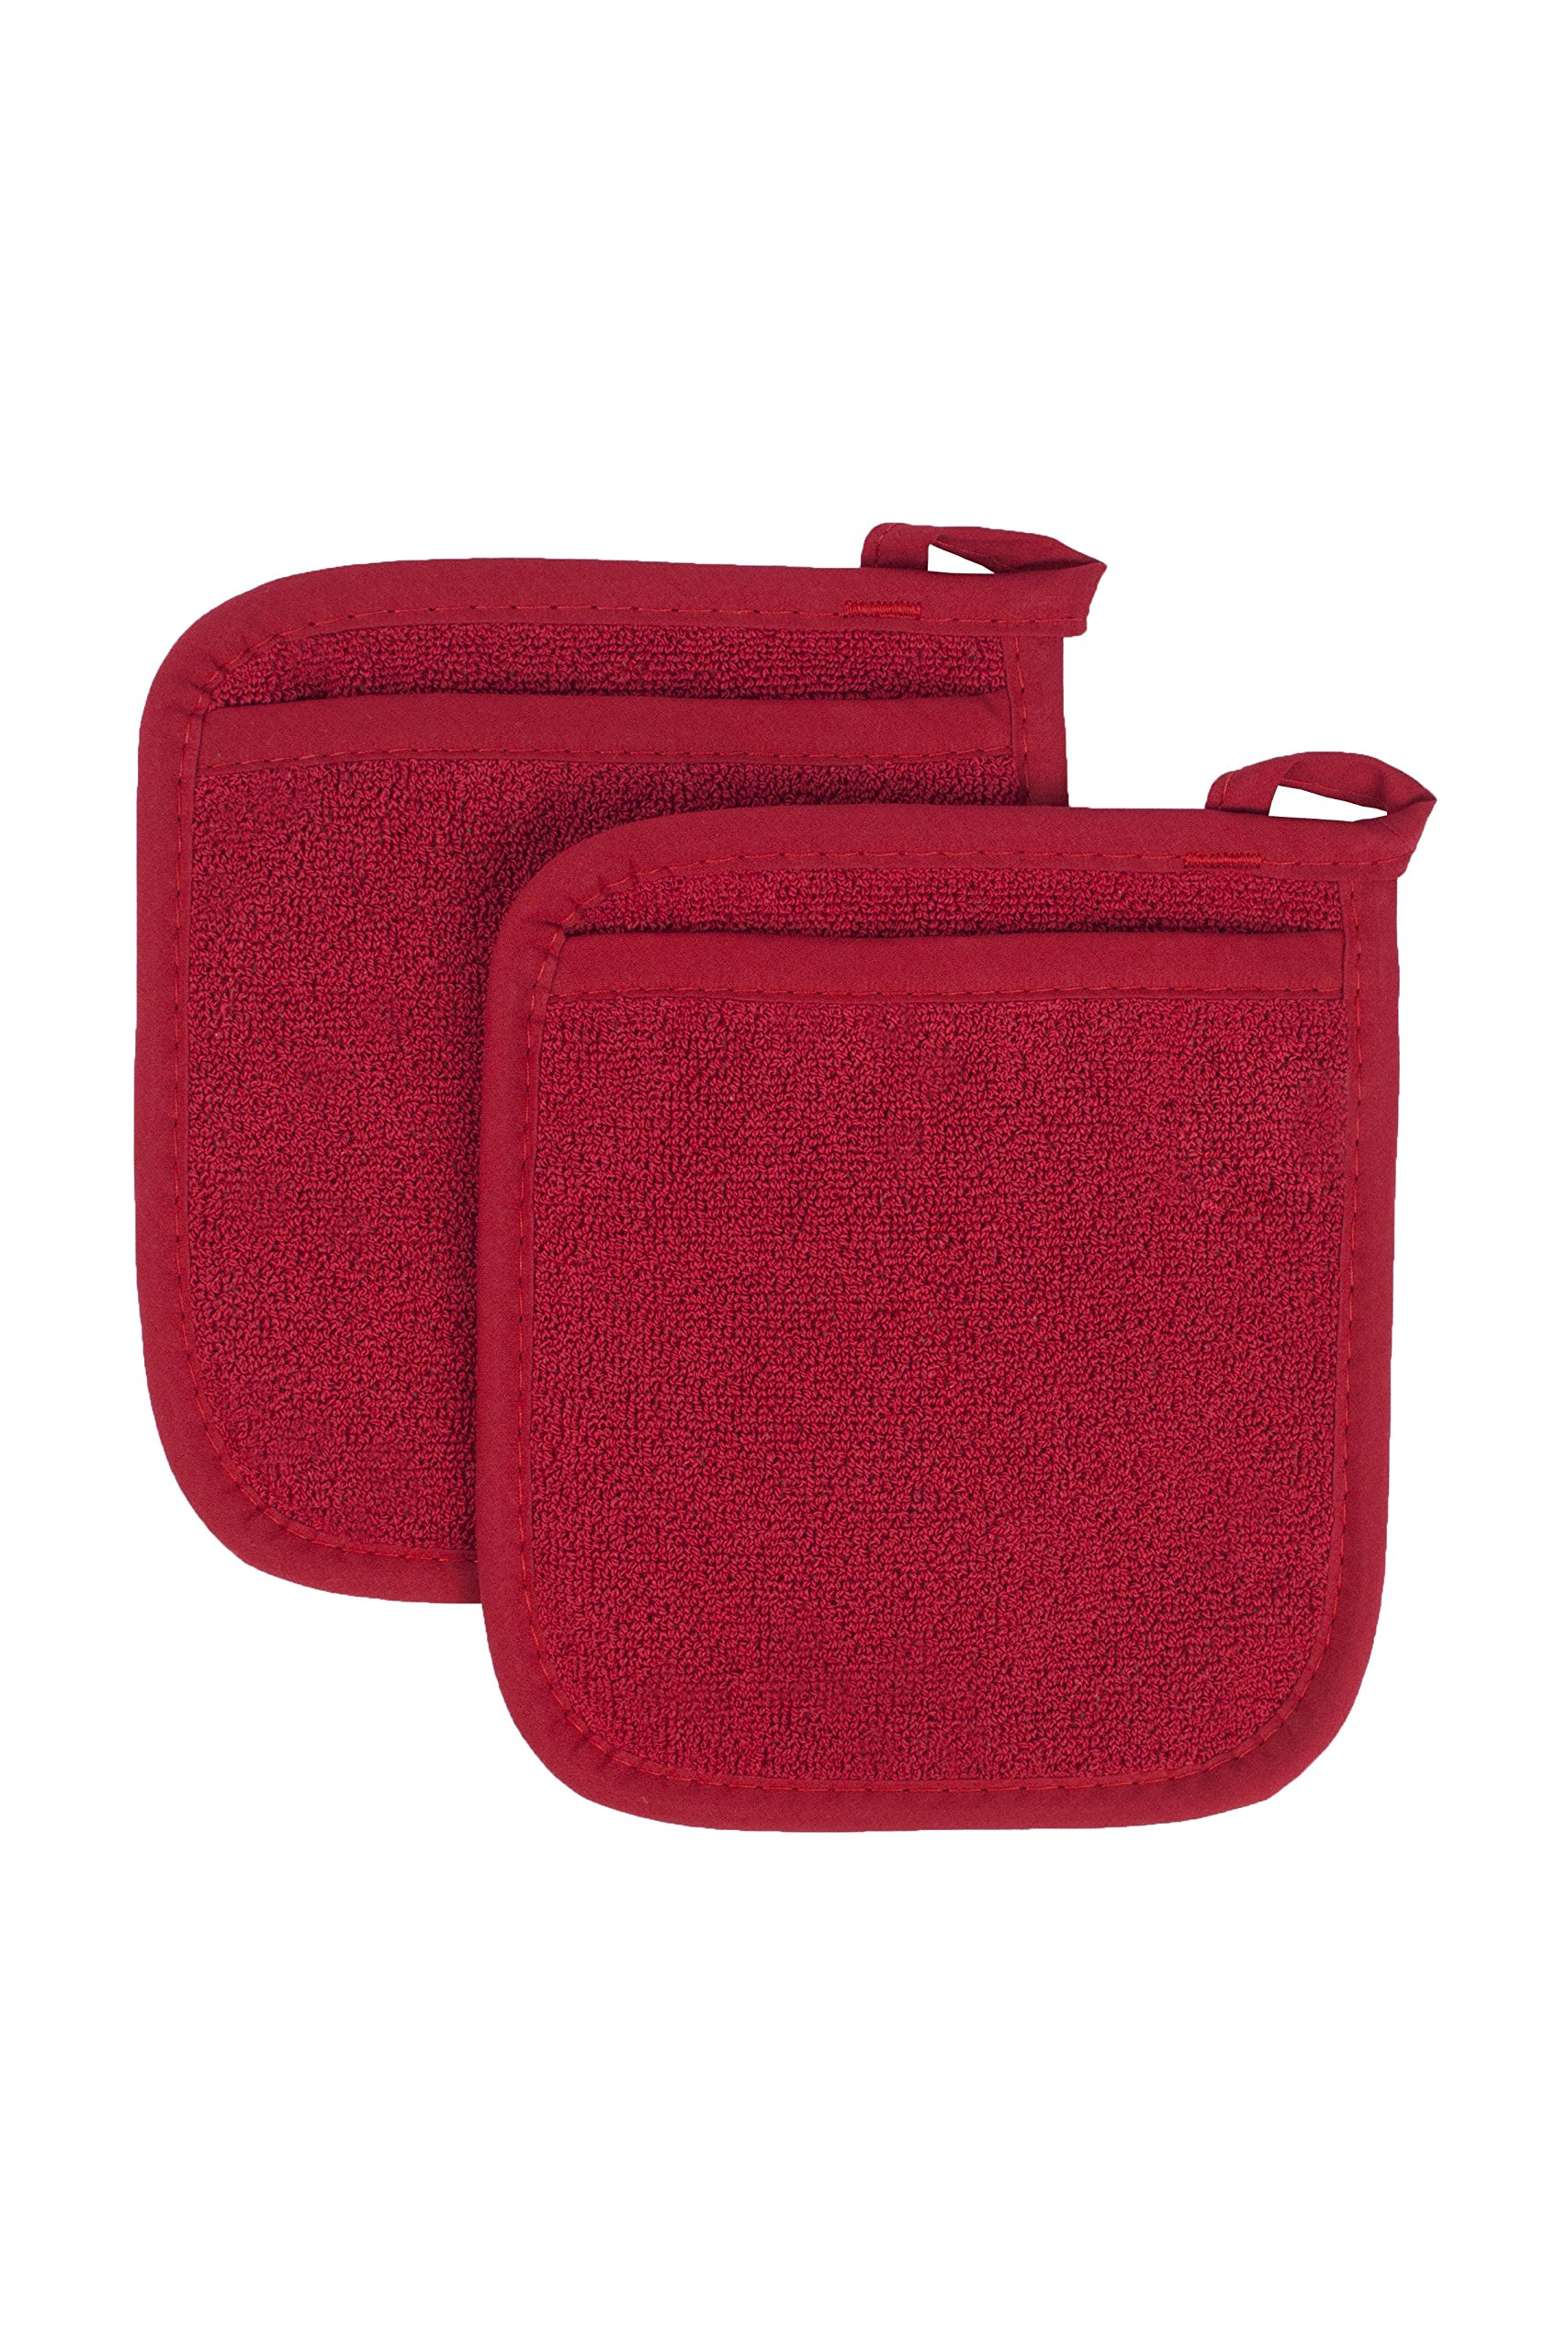 Ritz Royale Collection 100% Cotton Terry Cloth Pocket Mitt Set, Dual-Function Hot Pad / Pot Holder, 2-Piece, Paprika Red